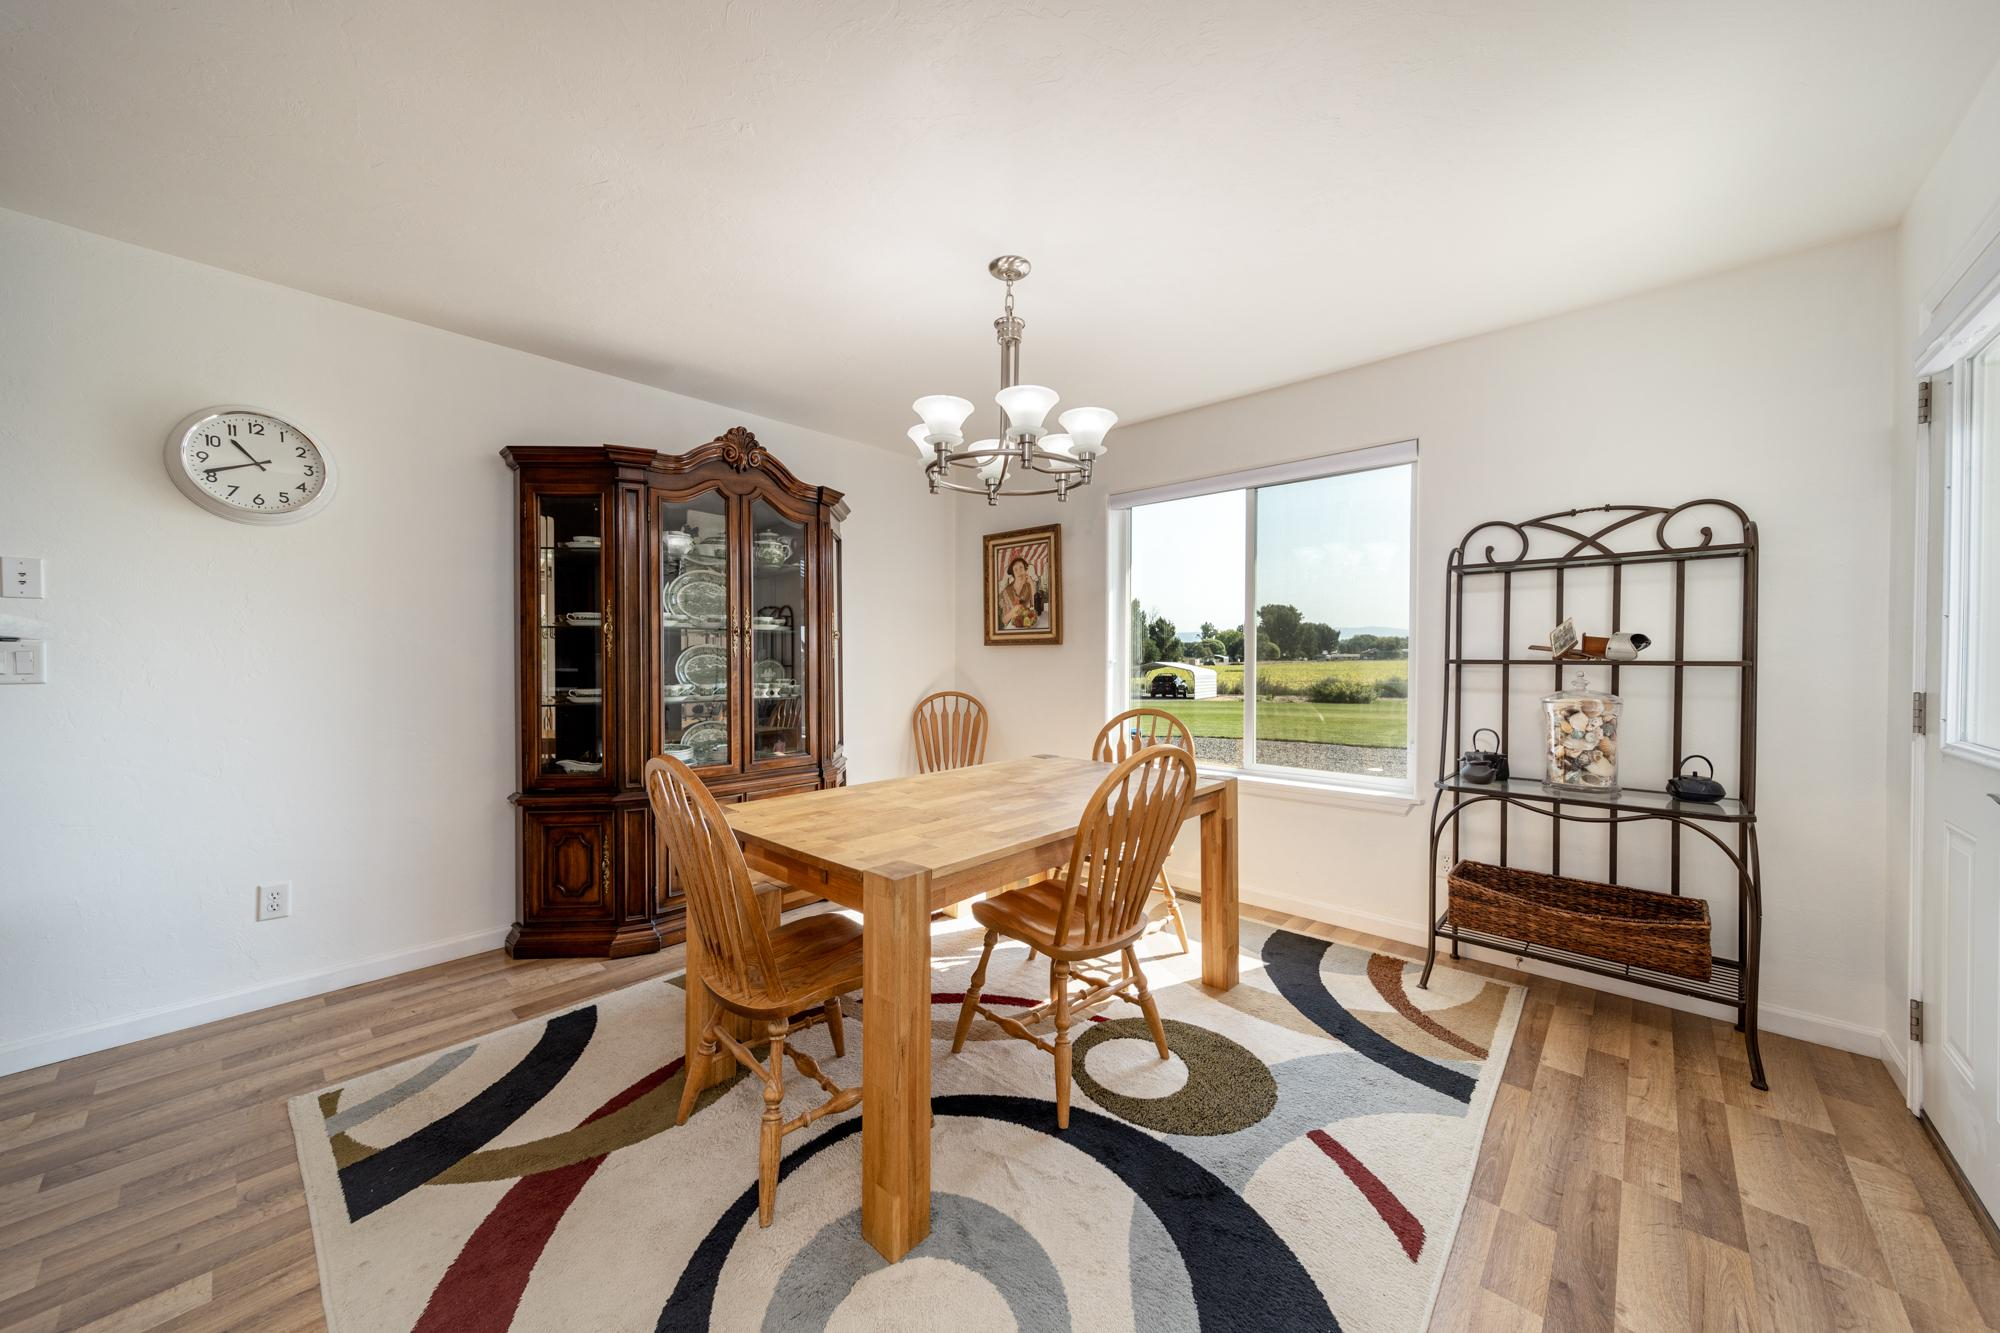 Dining Area - 15552 6120 Rd Montrose, CO 81403 - Atha Team Country Real Estate